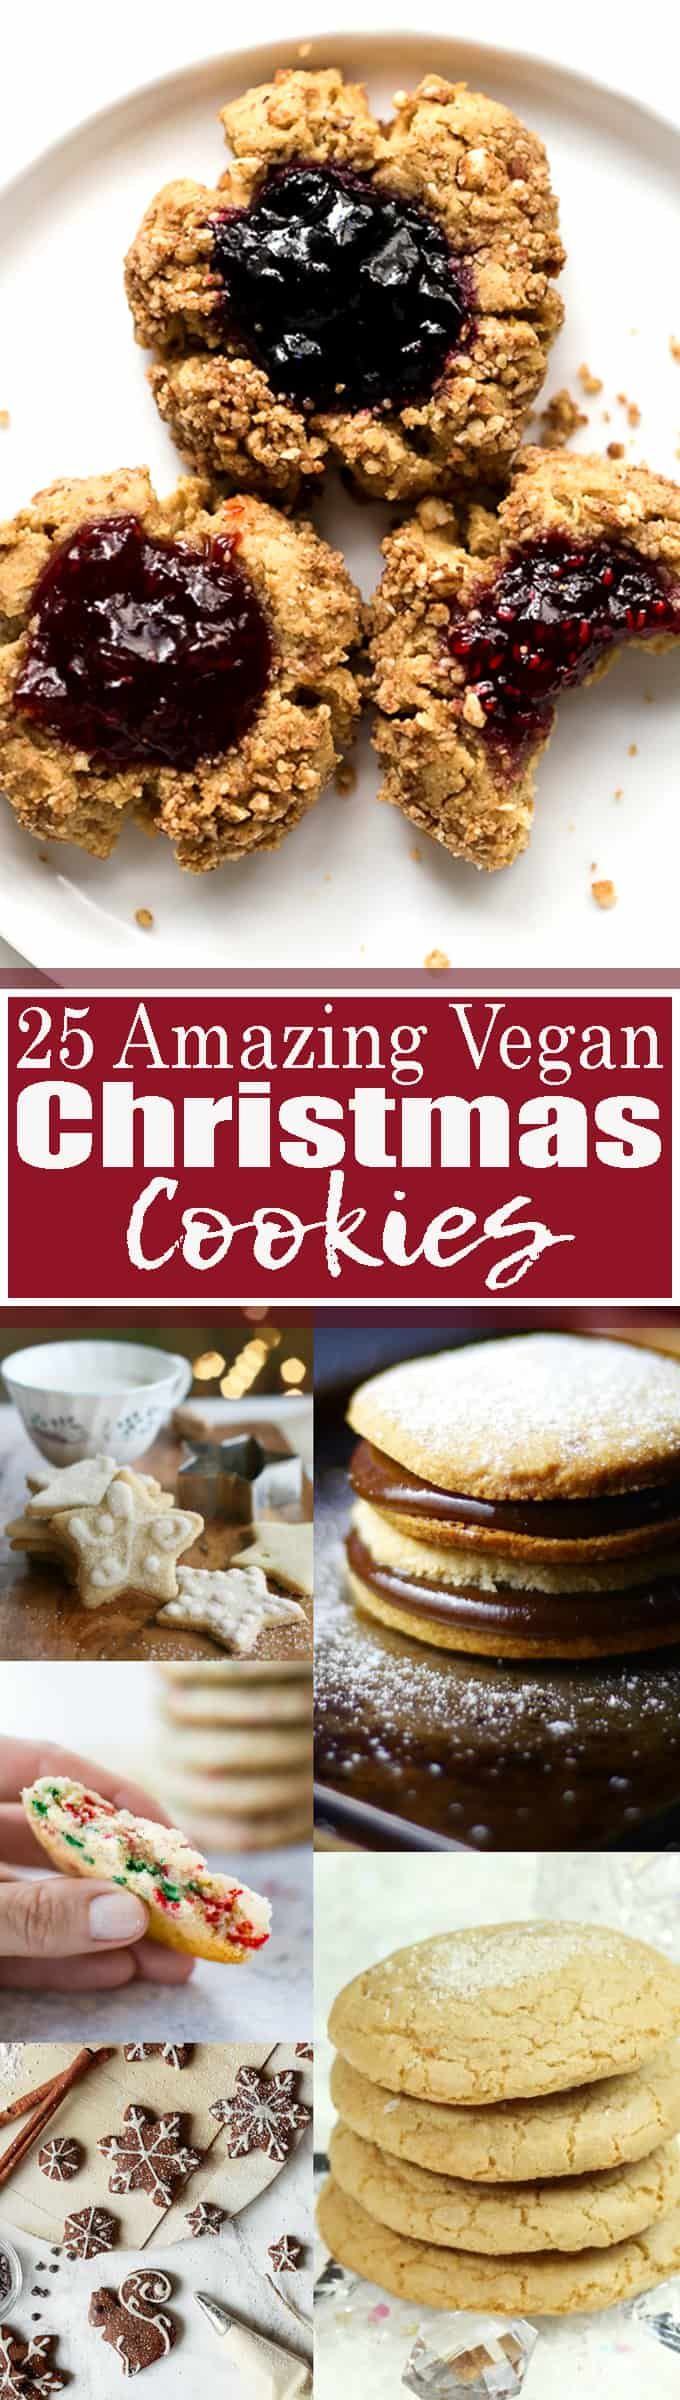 If you're looking for vegan Christmas cookies this is the right place for you! All of these recipes are vegan and a lot of them are also gluten-free and low in sugar. Find more vegan Christmas recipes at veganheaven.org <3